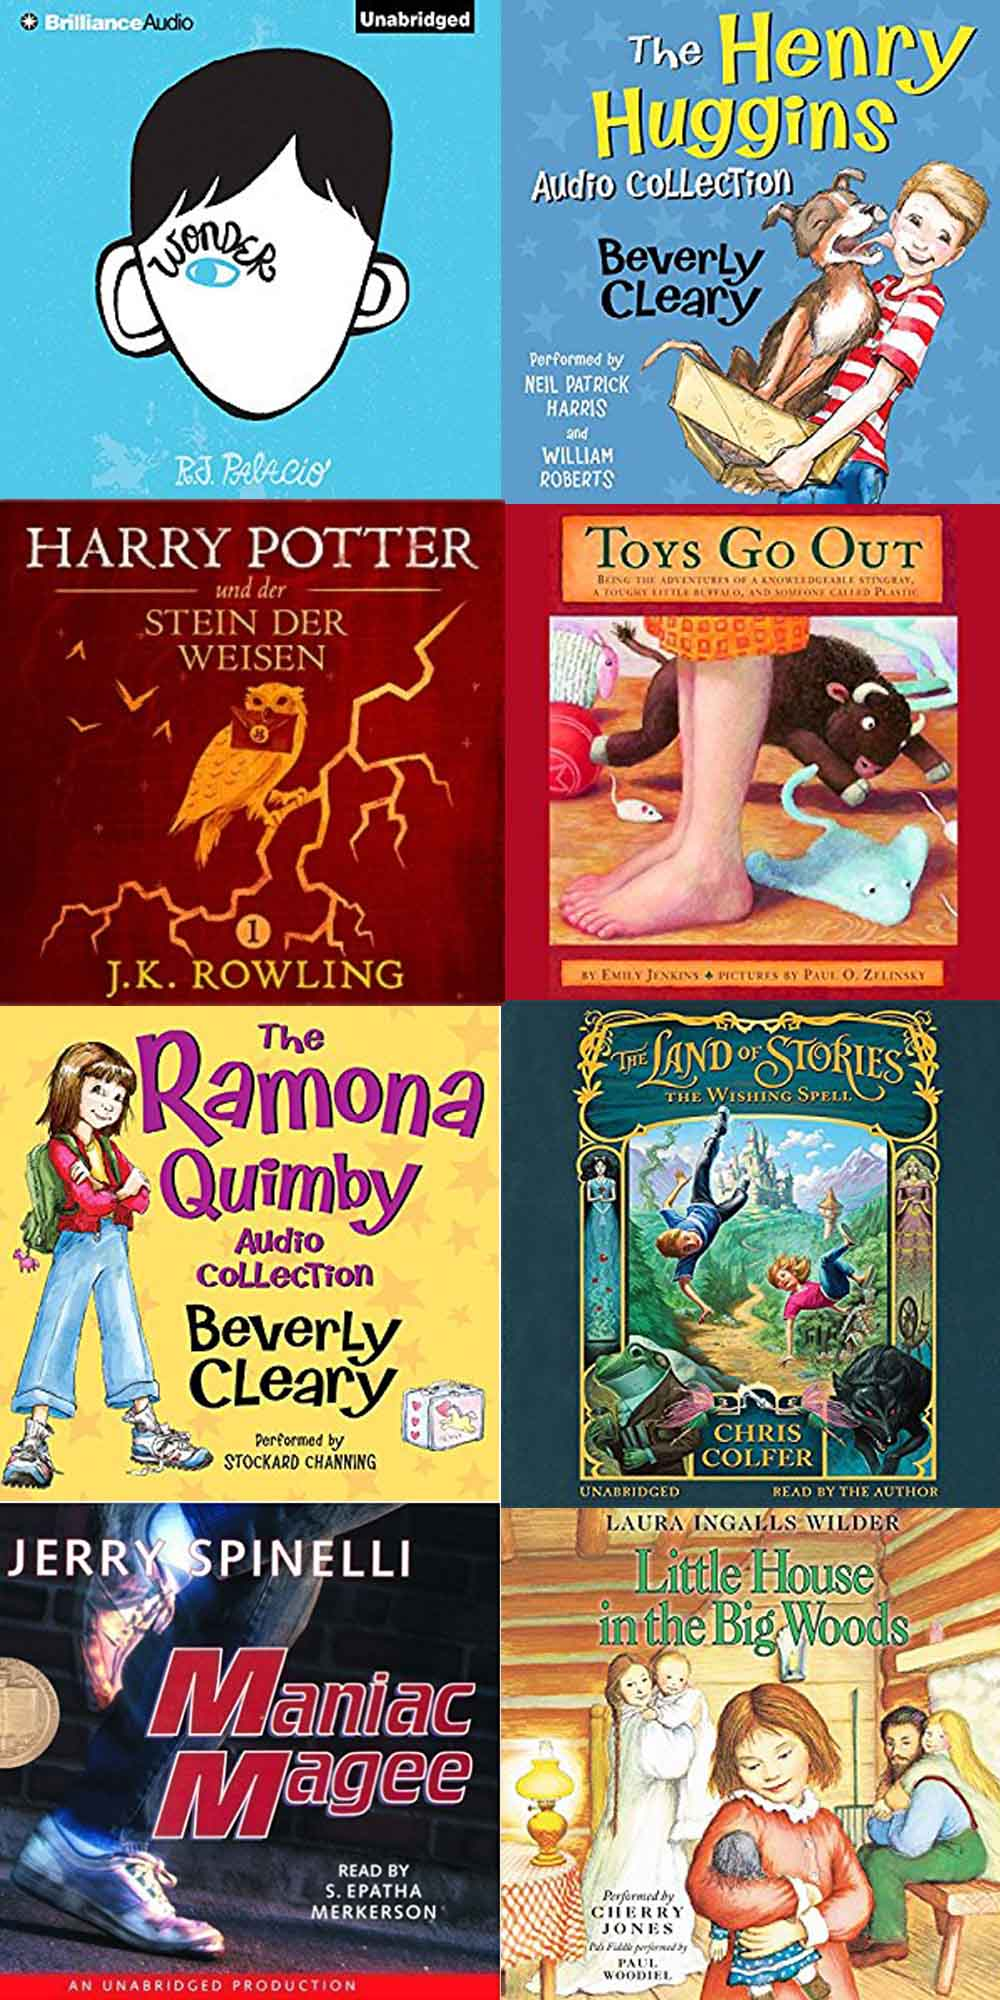 The best audiobooks for family road trips! We've rounded up our very favorite audiobooks to keep the whole family entertained on your next road trip!